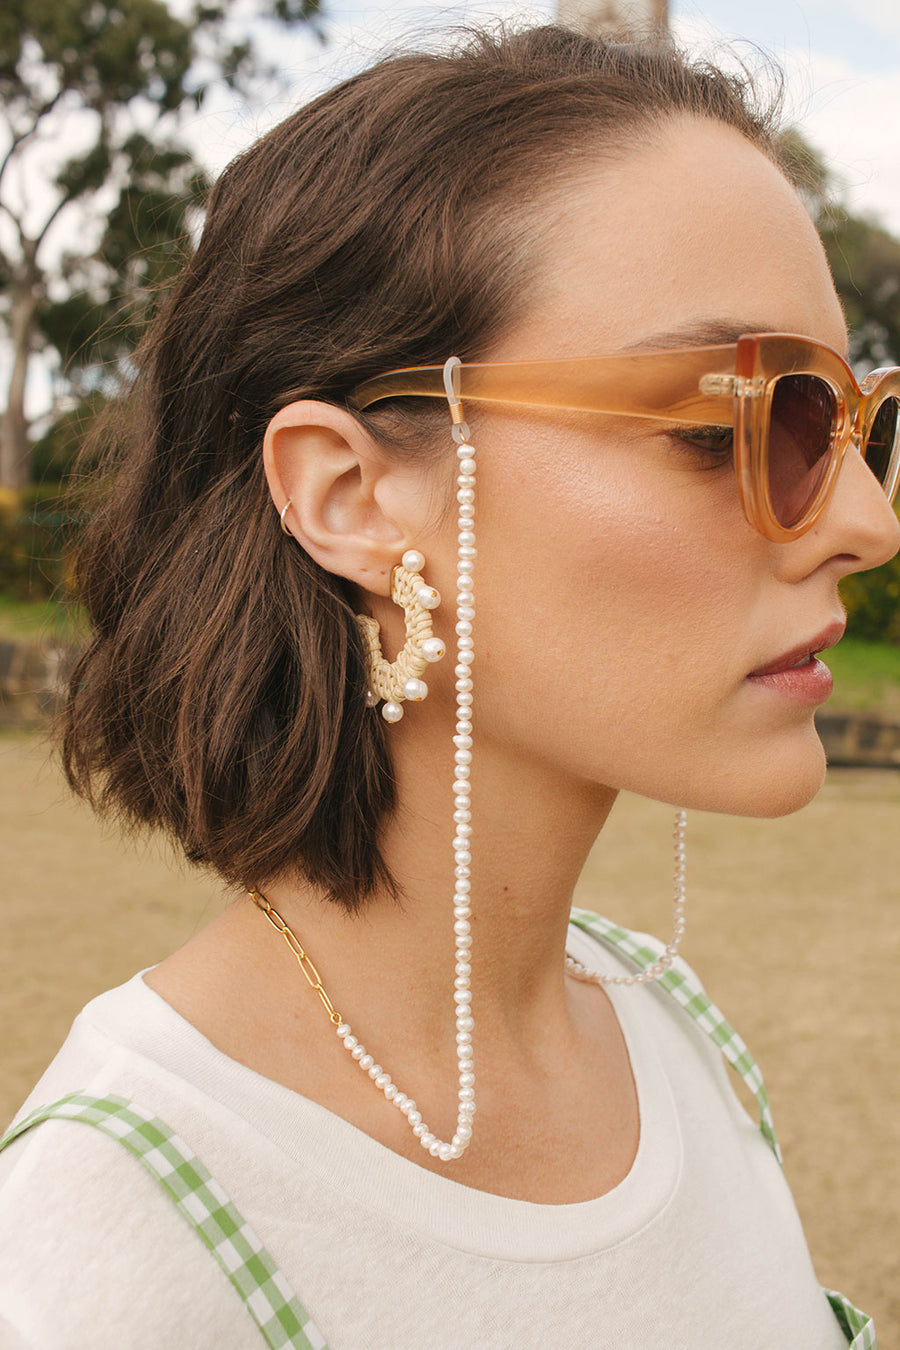 HEW Clothing Lustre glasses chain with natural iridescent freshwater pearls